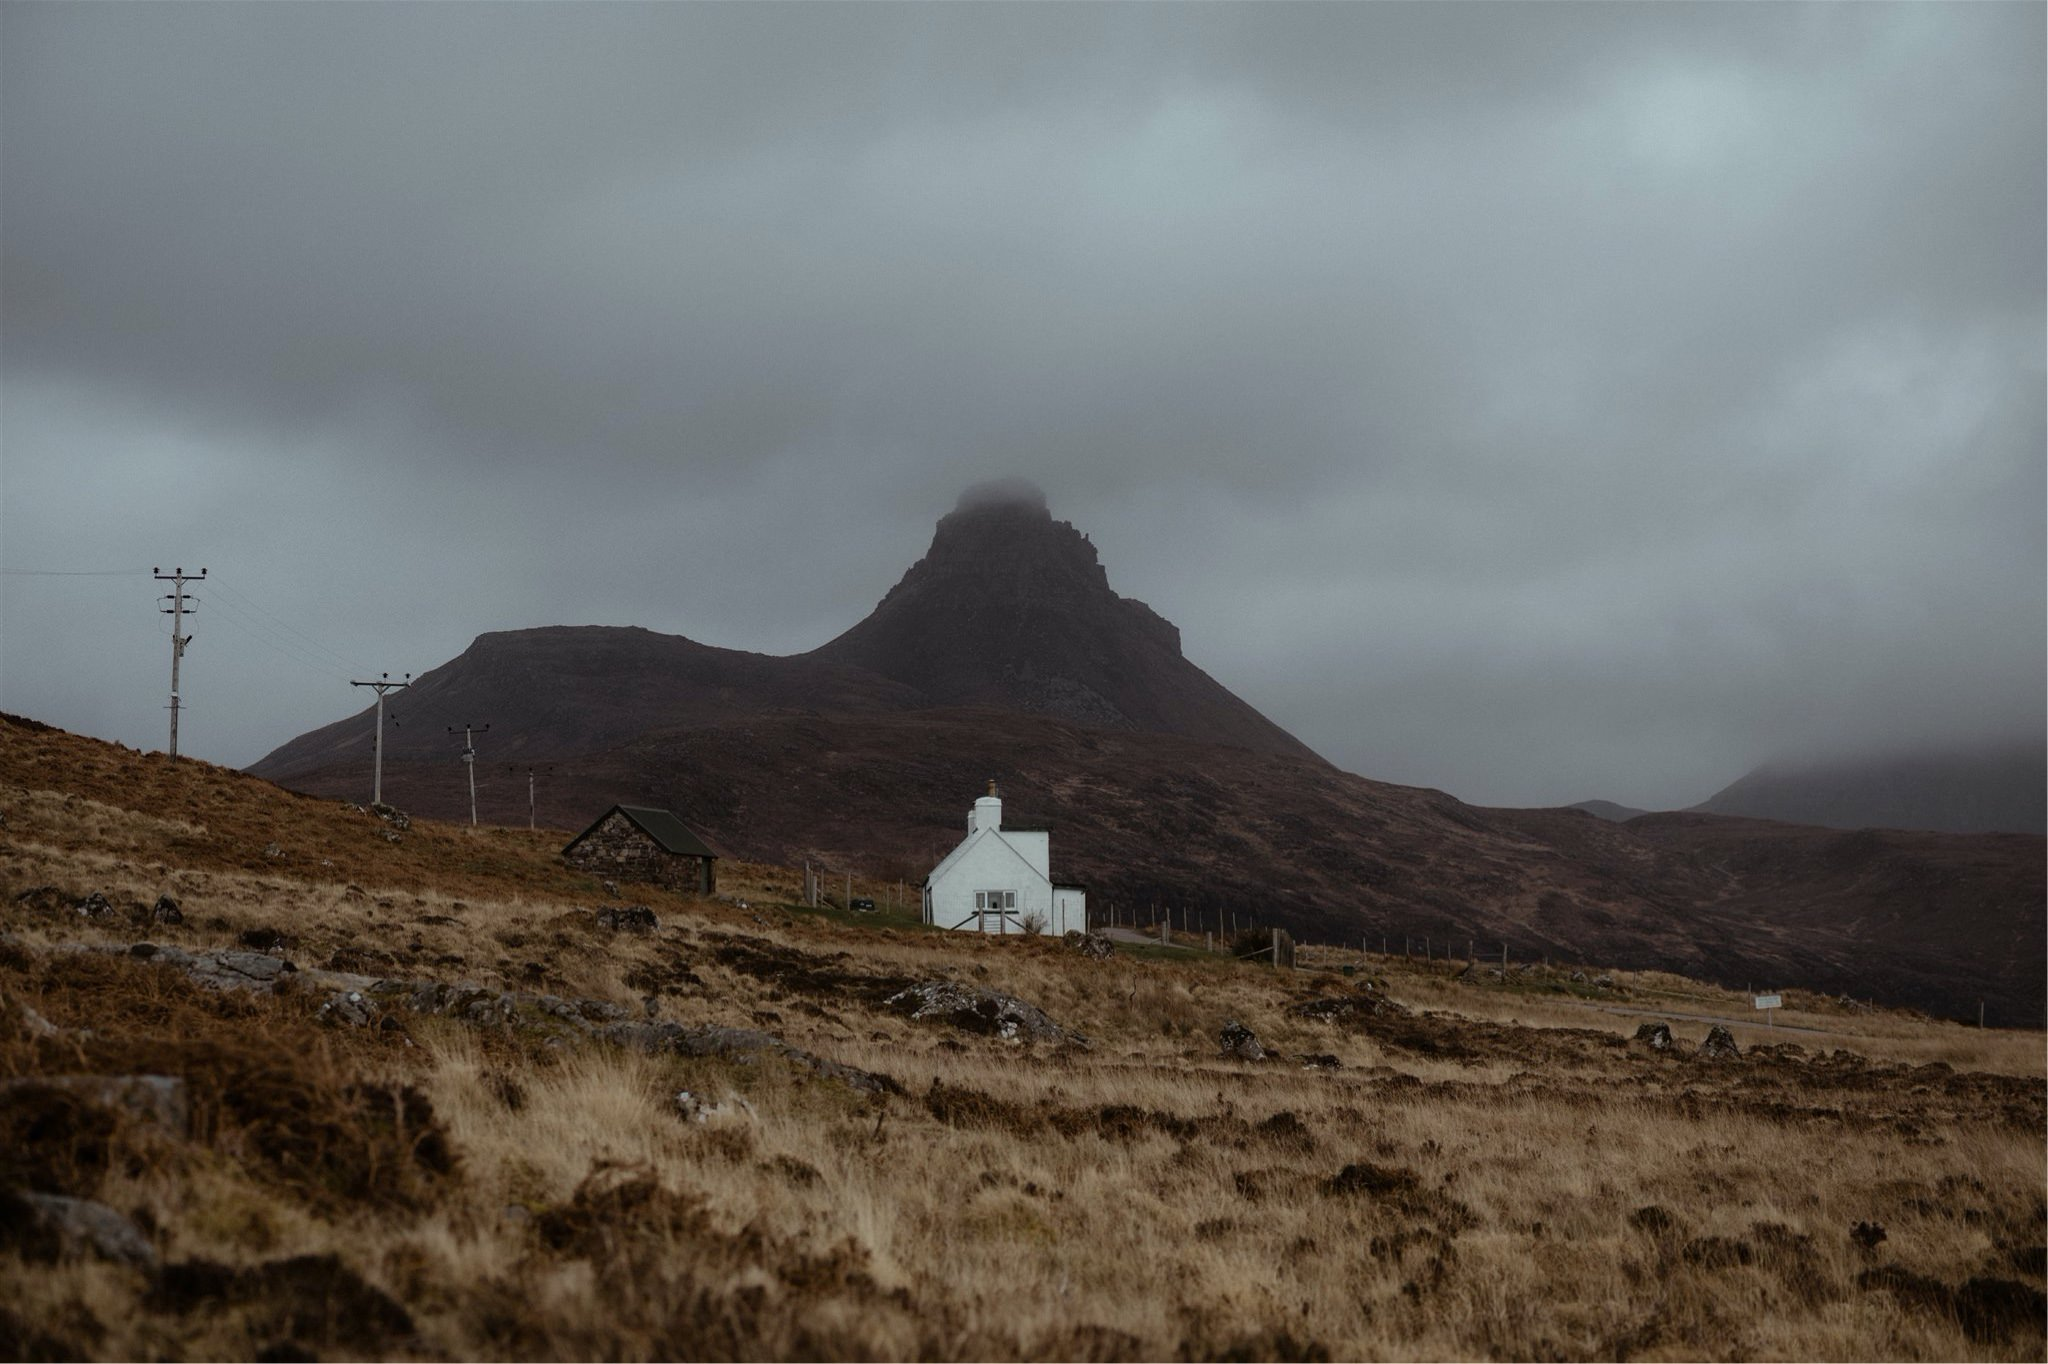 Landscape shot of a cottage and mountain in Assynt, Scotland